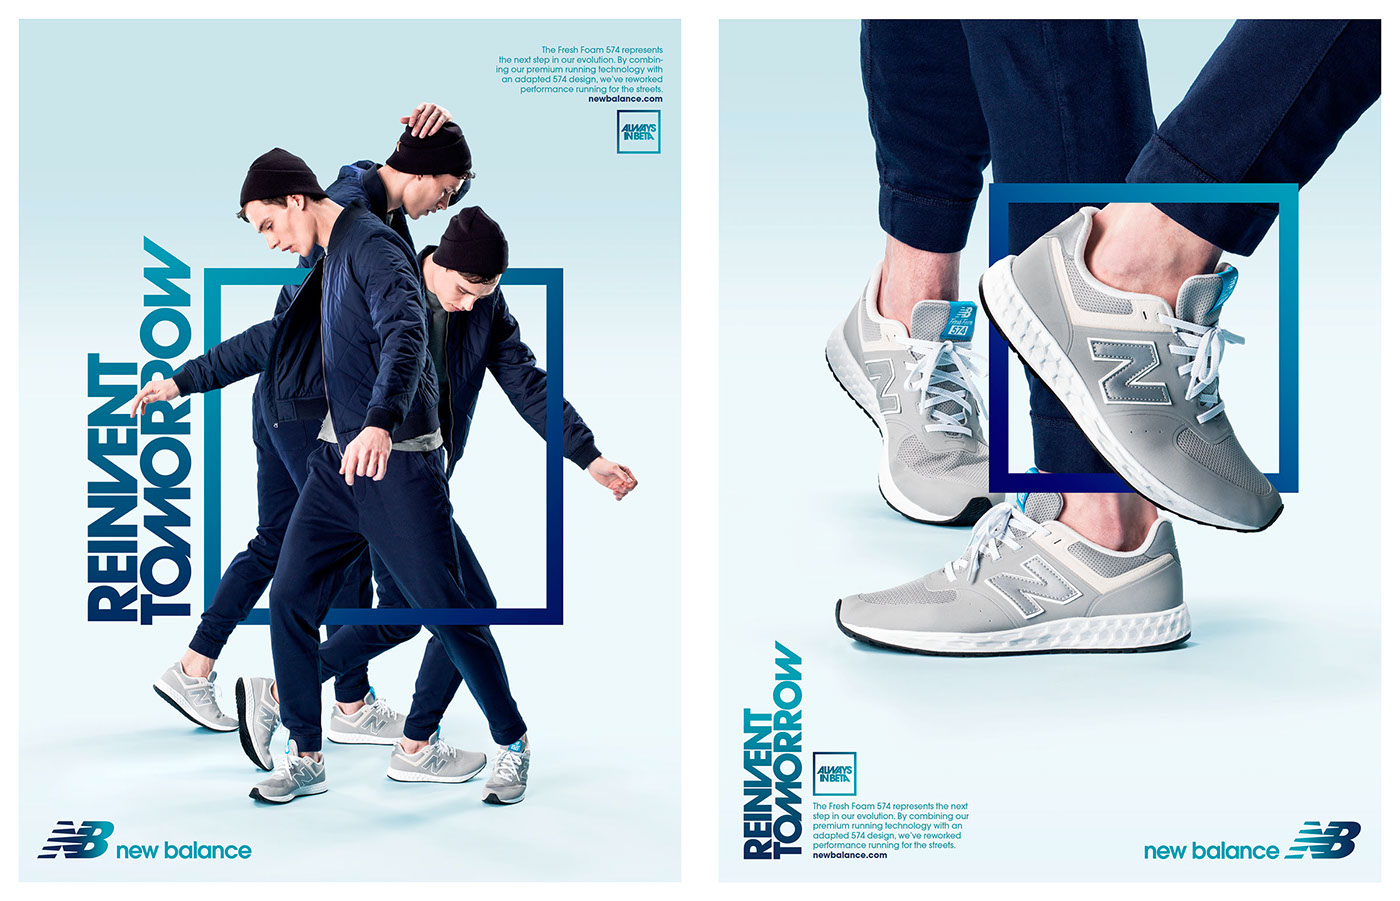 c9f86524 New Balance Omni Launch Campaign on Behance